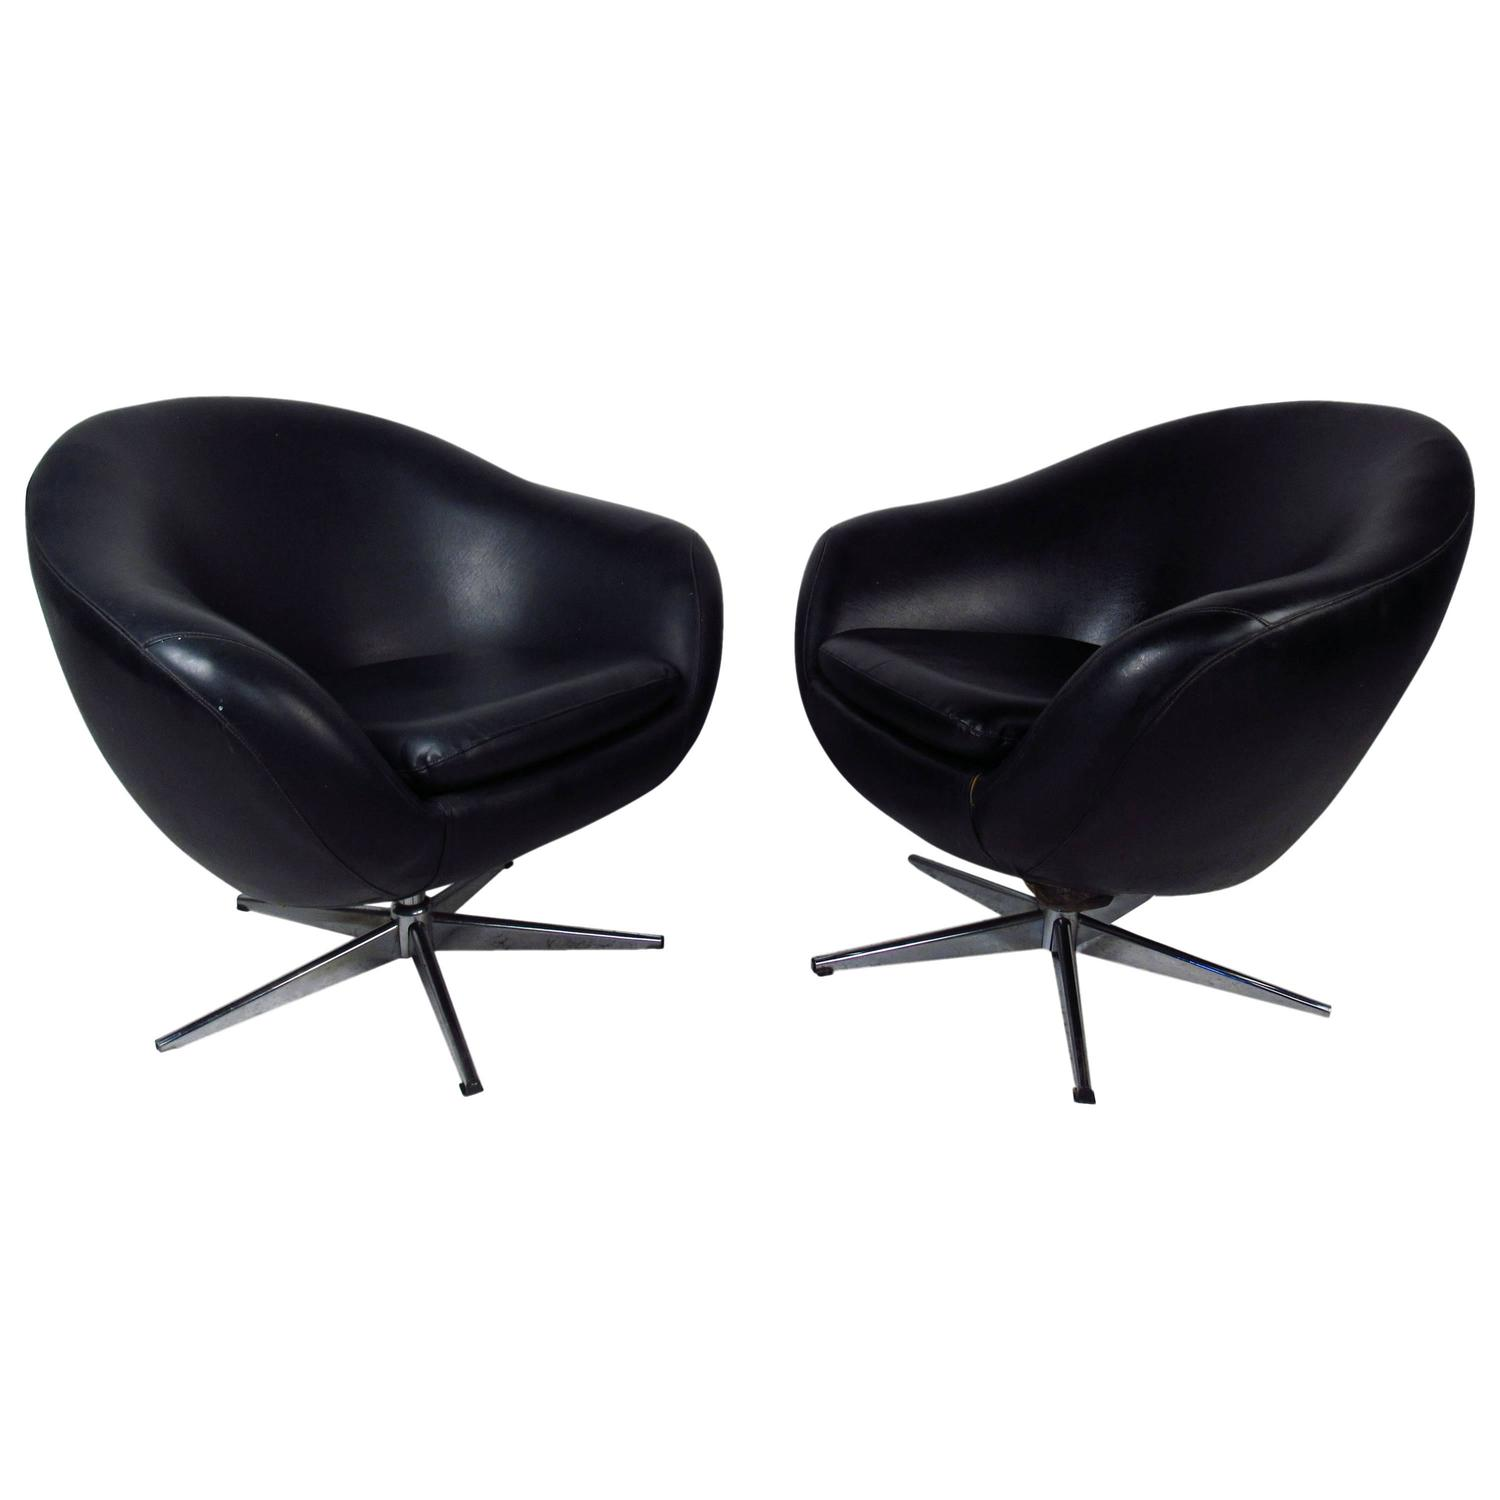 swivel chairs for sale navy chair cushions pair of overman pod at 1stdibs